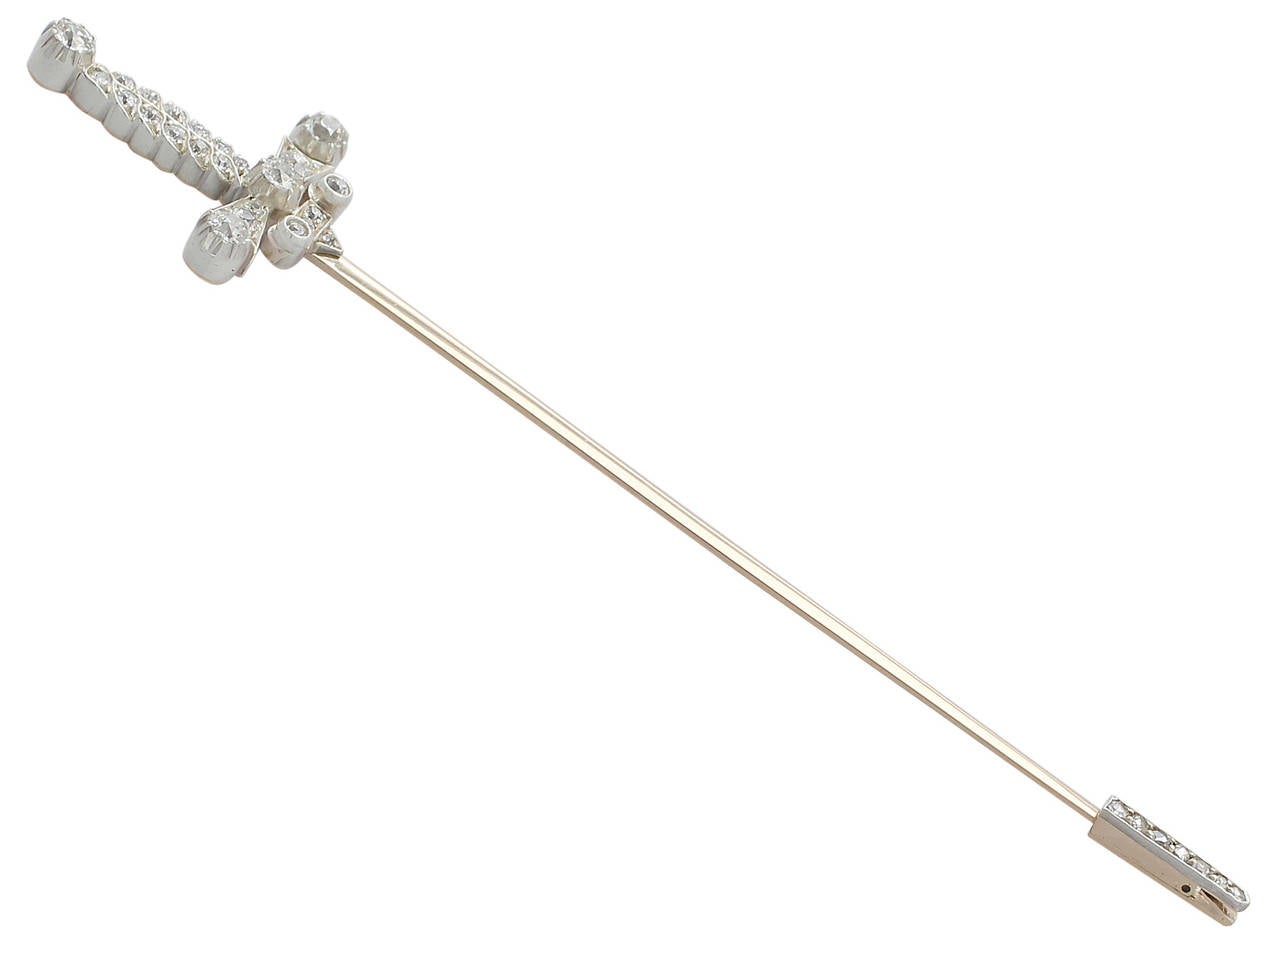 A large, fine and stunning antique Edwardian 1.59 carat diamond and 9 karat yellow gold, silver set, jabot pin brooch in the form of a sword; part of our diverse diamond jewelry and estate jewelry collections